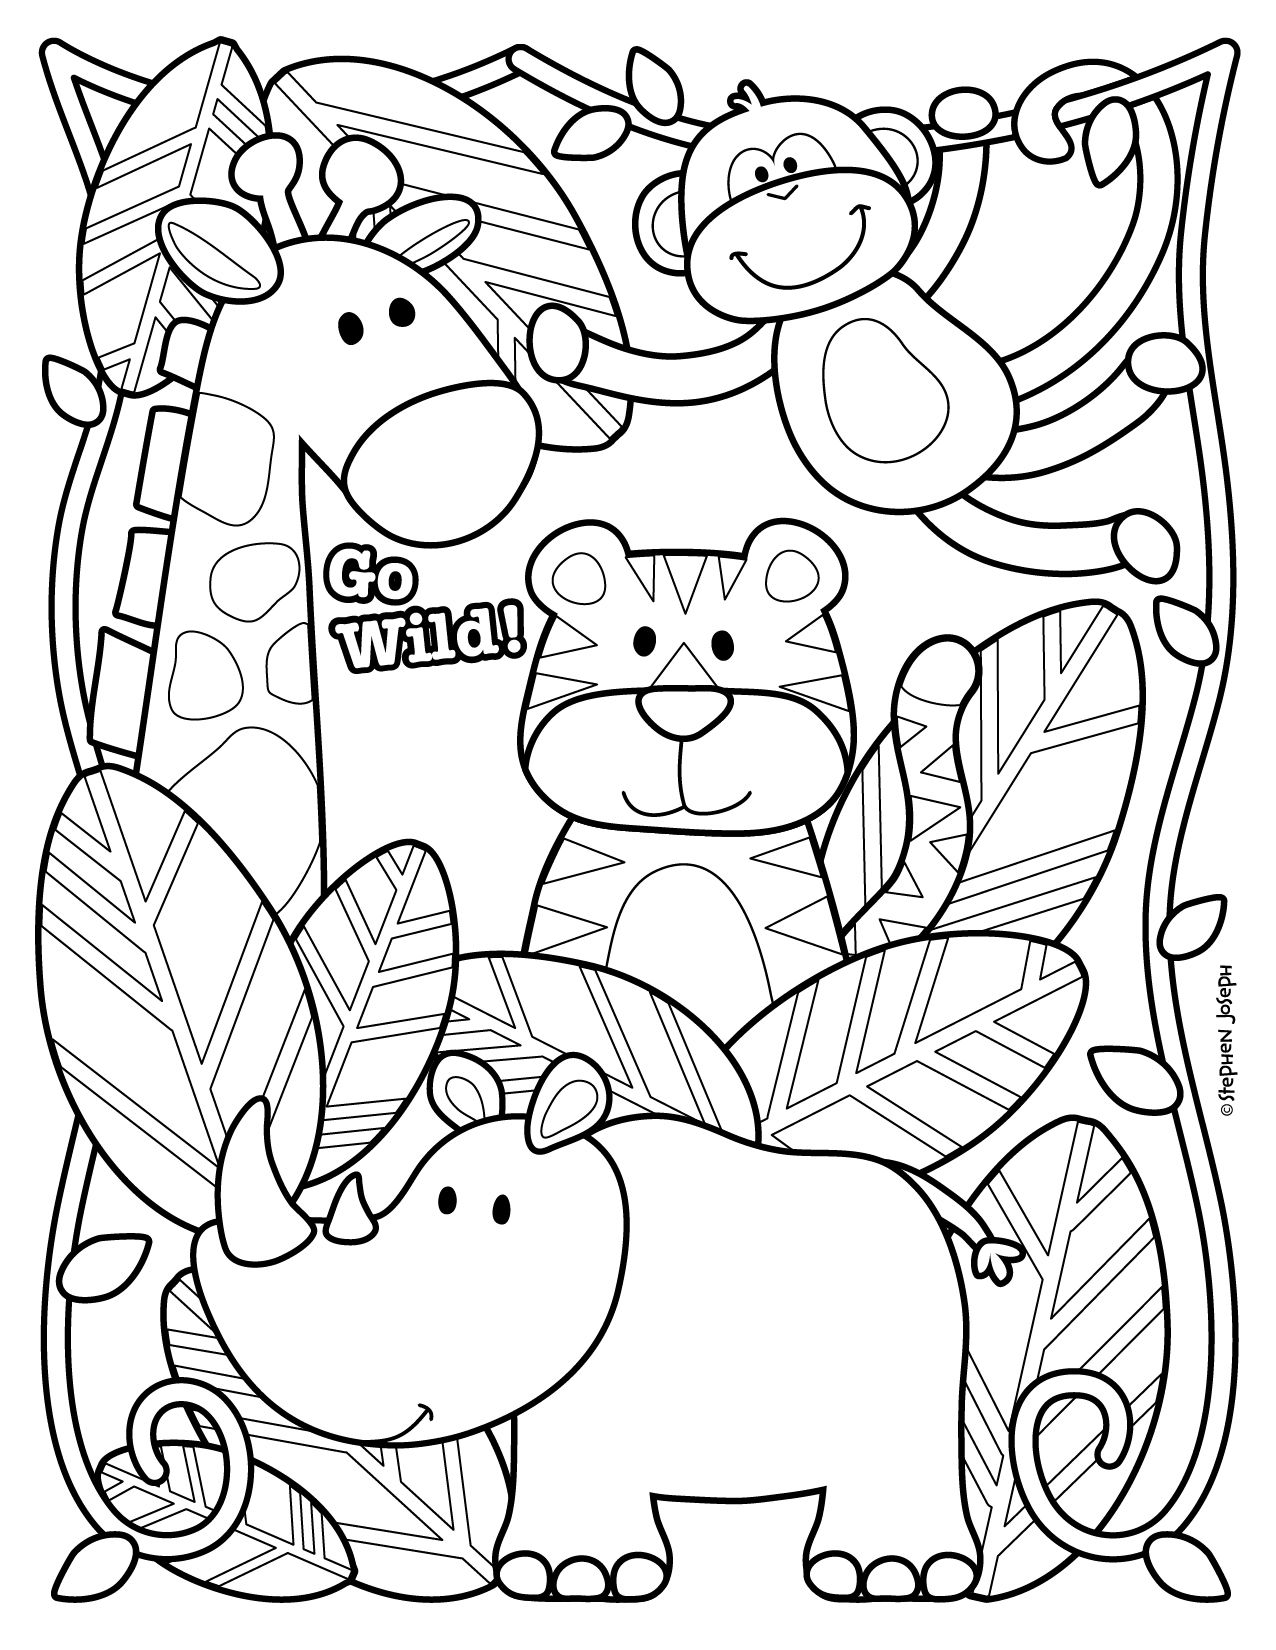 Zoo Coloring Page Printable Free By Stephen Joseph Gifts